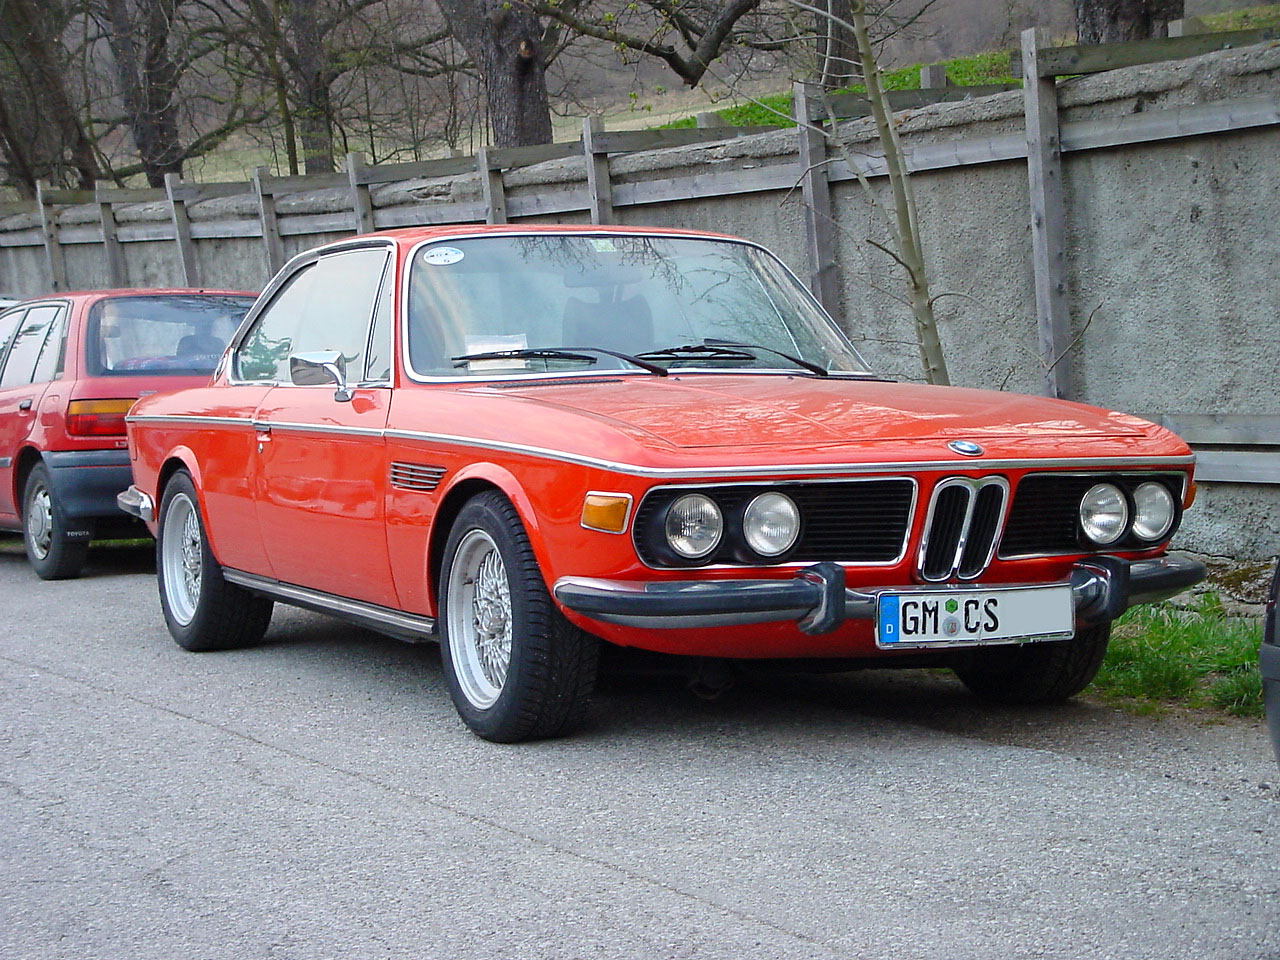 File:BMW 3.0CSi-Front.jpg - Wikimedia Commons